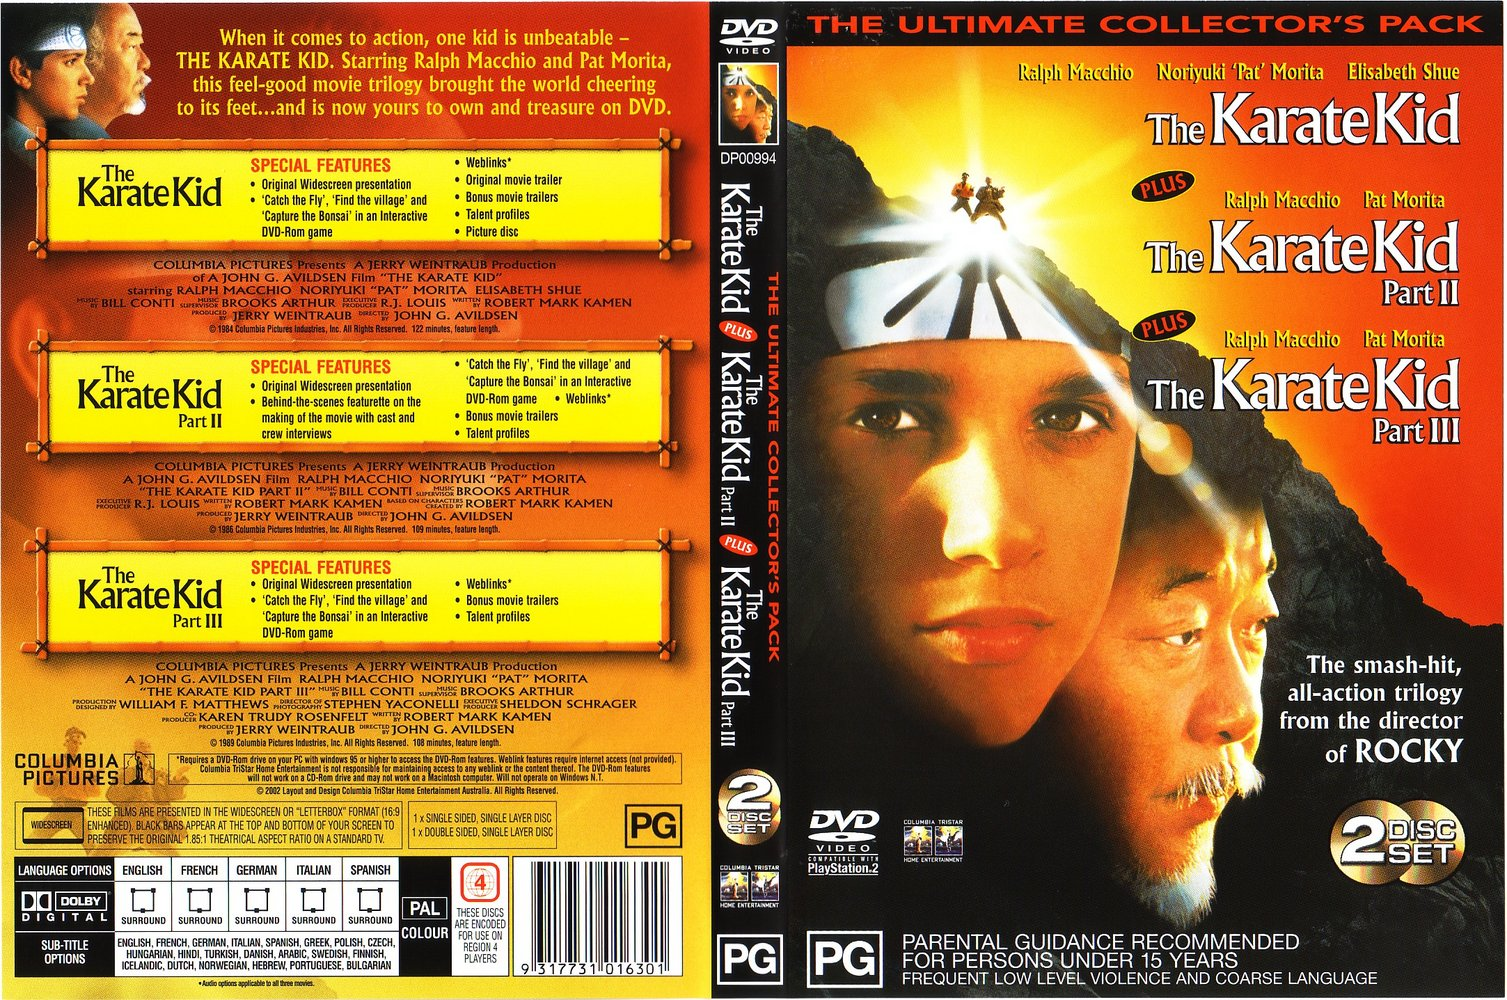 karate kid movies full length in english